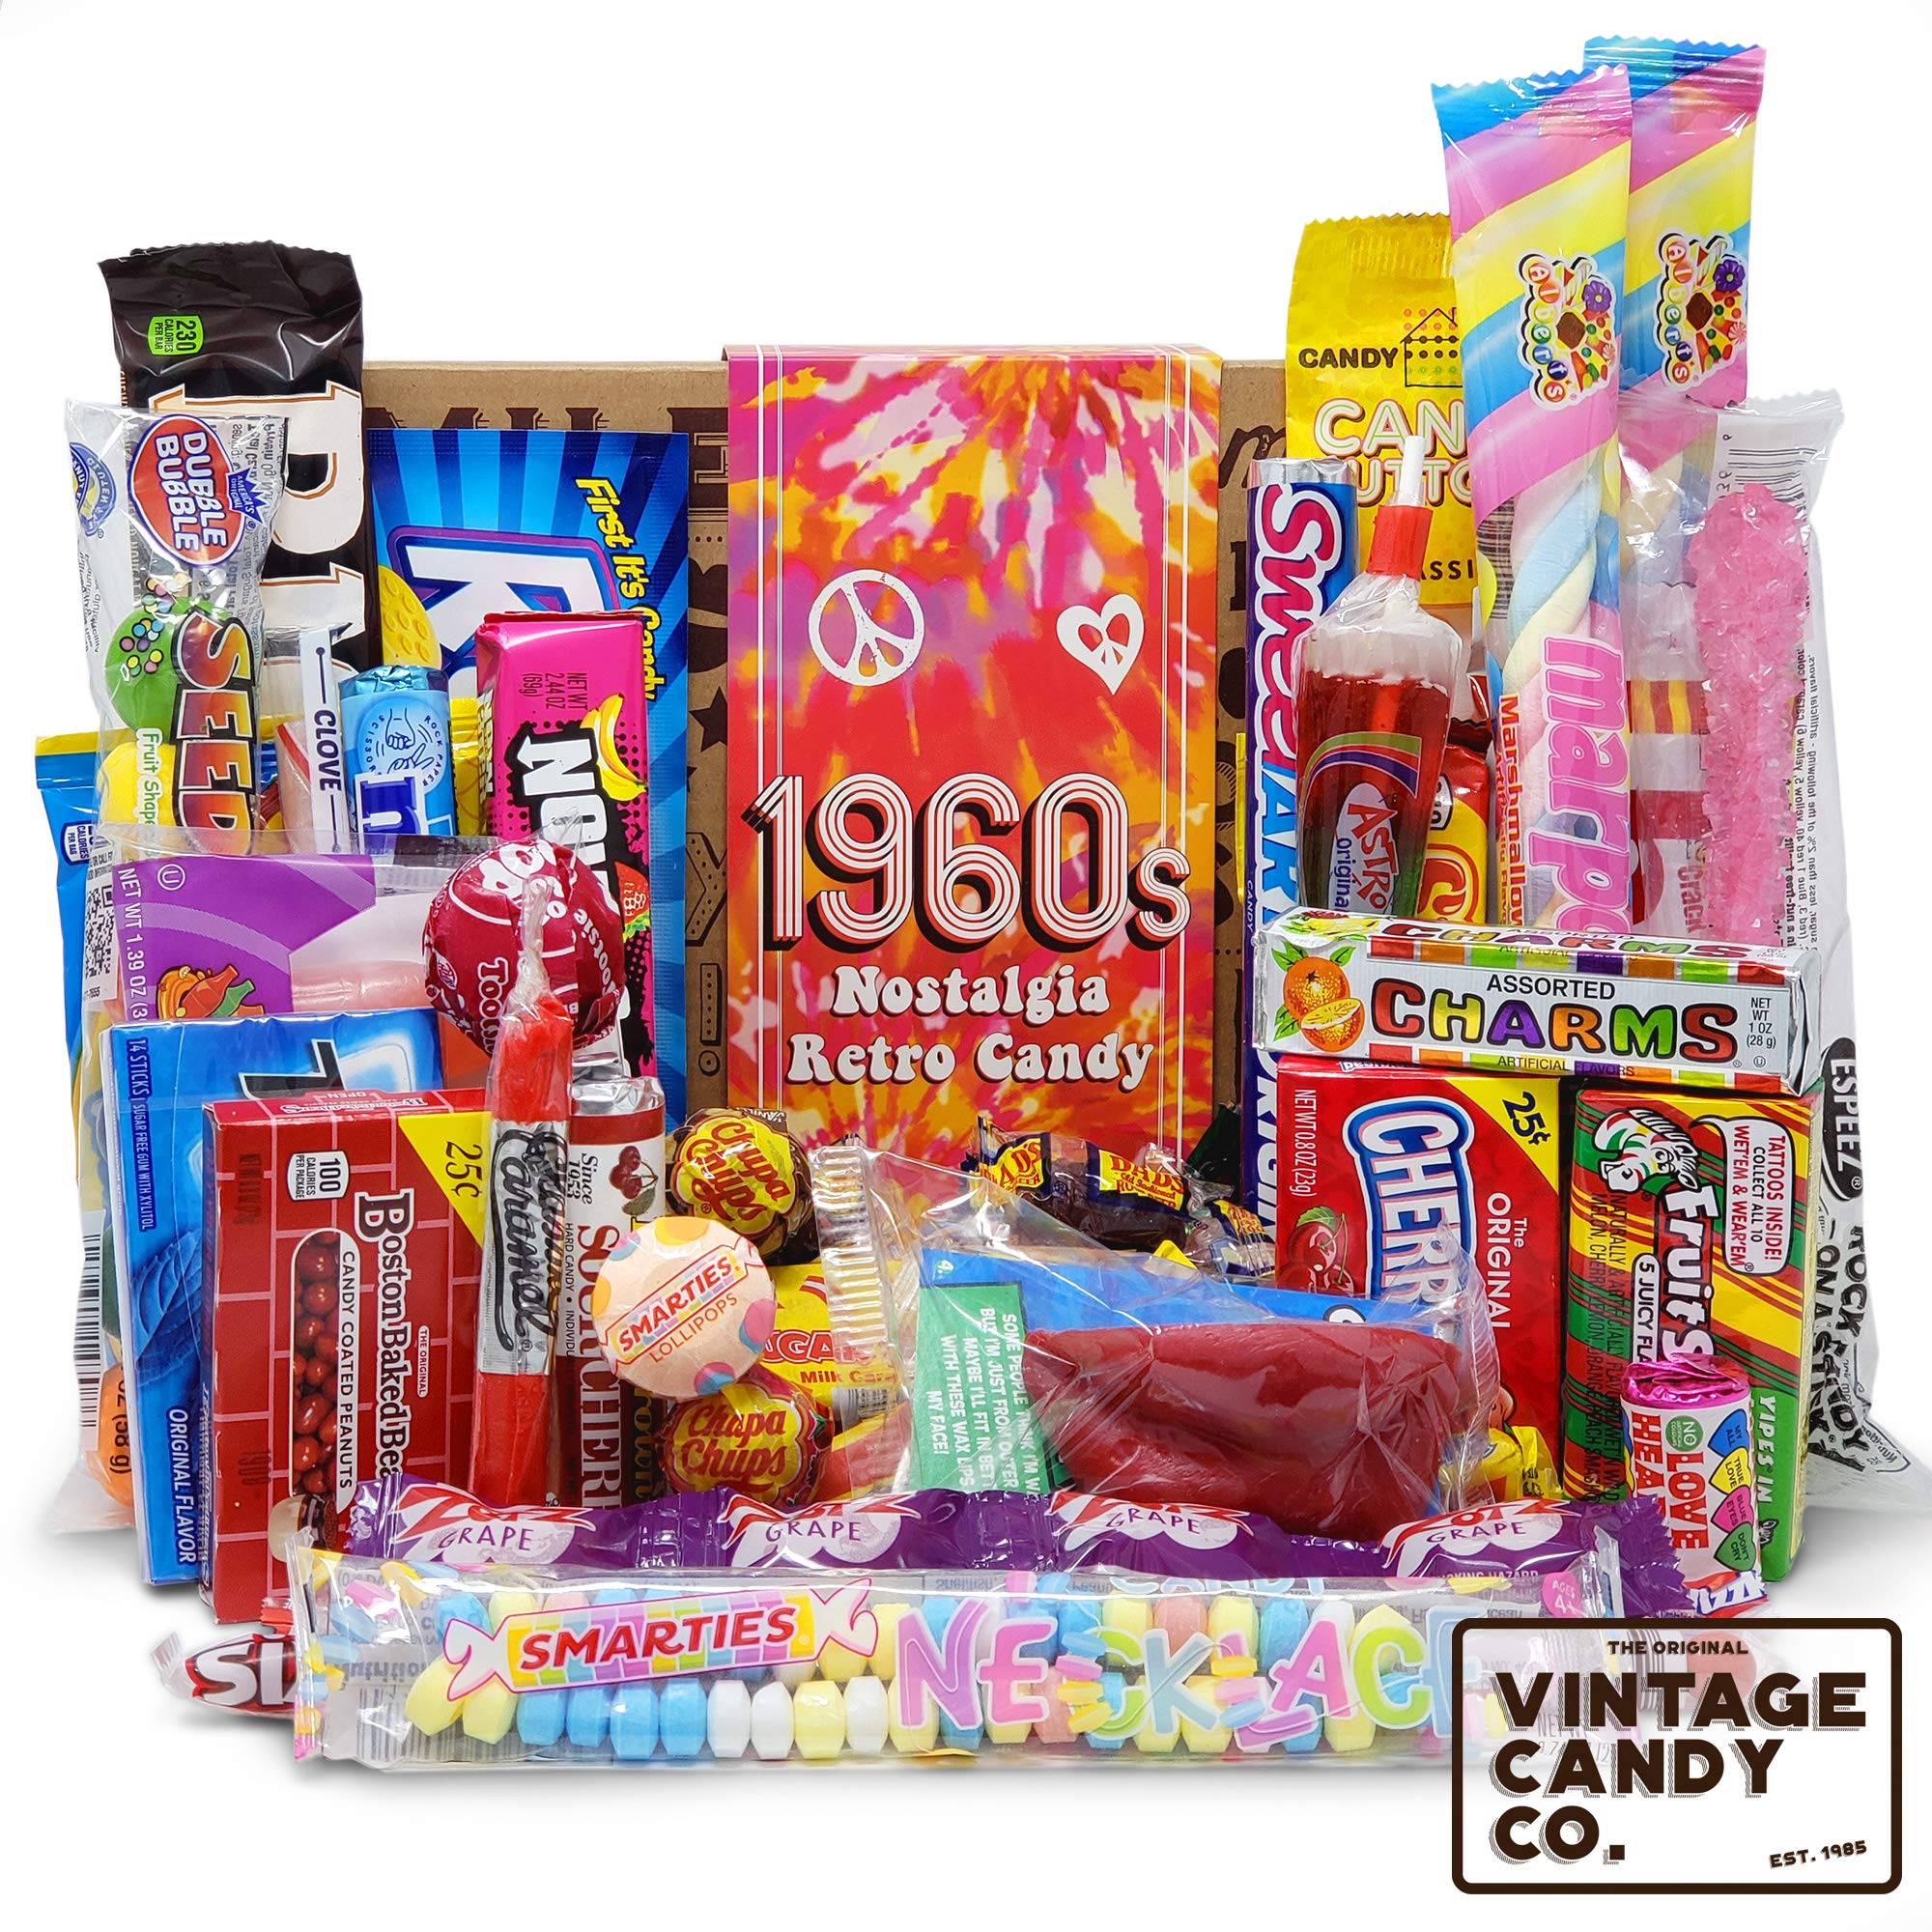 VINTAGE CANDY CO. 1960's RETRO CANDY GIFT BOX - 60s Nostalgia Candies - Flashback SIXTIES Fun Gag Gift Basket - PERFECT '60s Candies For Adults, College Students, Men or Women, Kids, Teens by Vintage Candy Co.